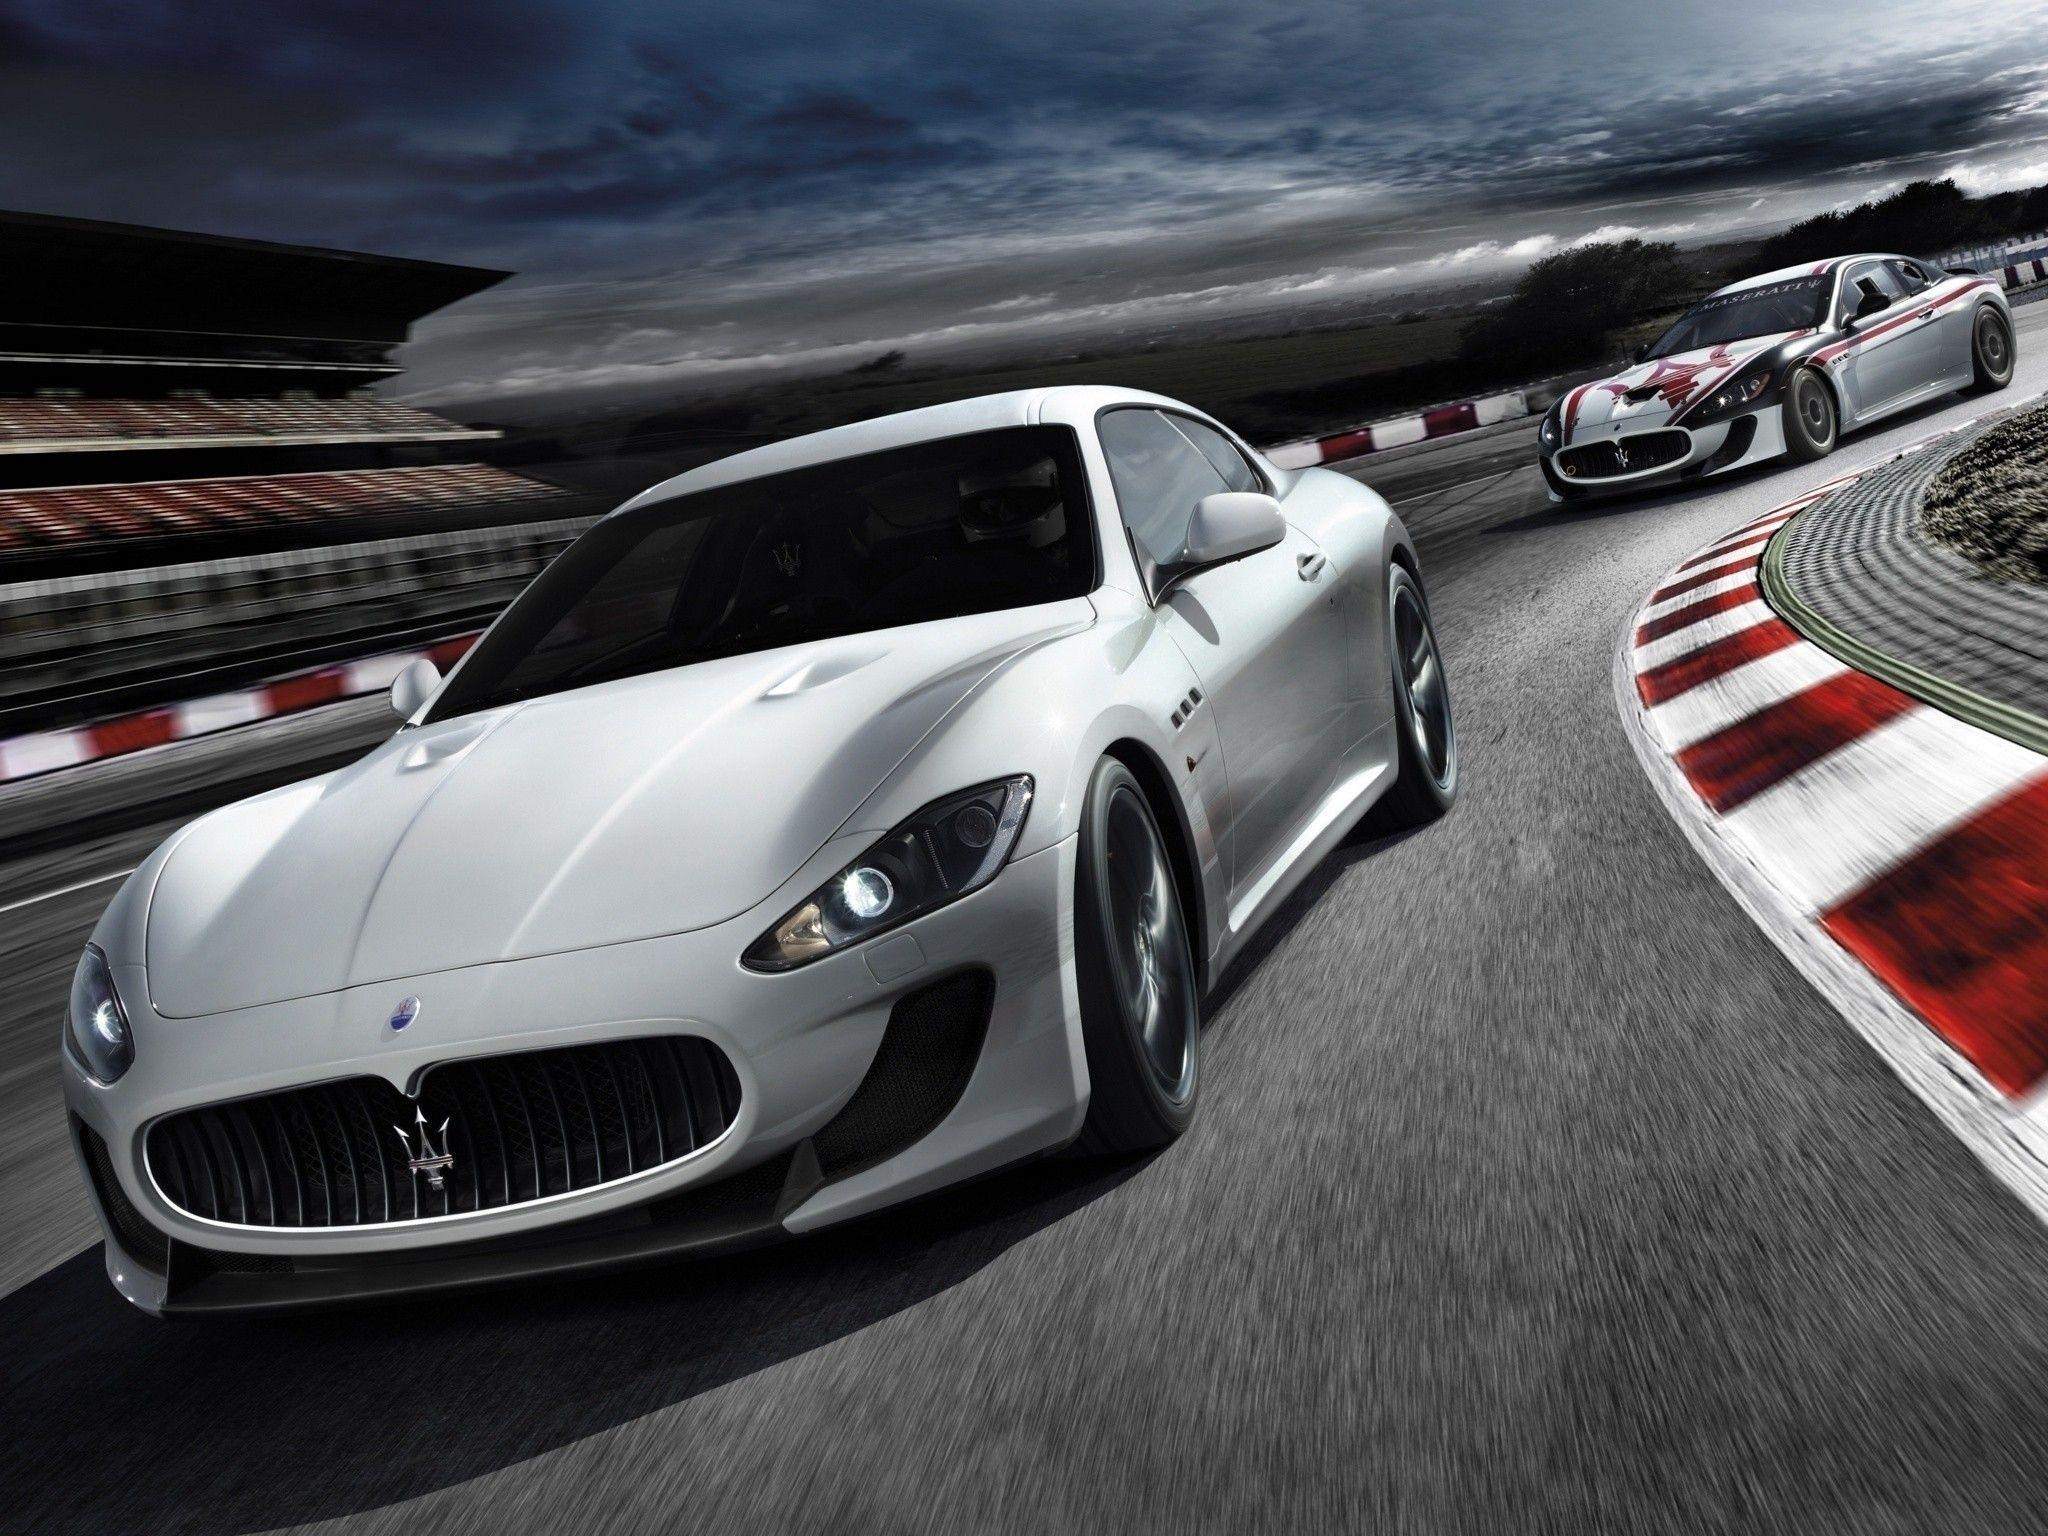 Cars-Maserati-Fresh-New-Hd-Wallpaper- Cars wallpaper HD free ...